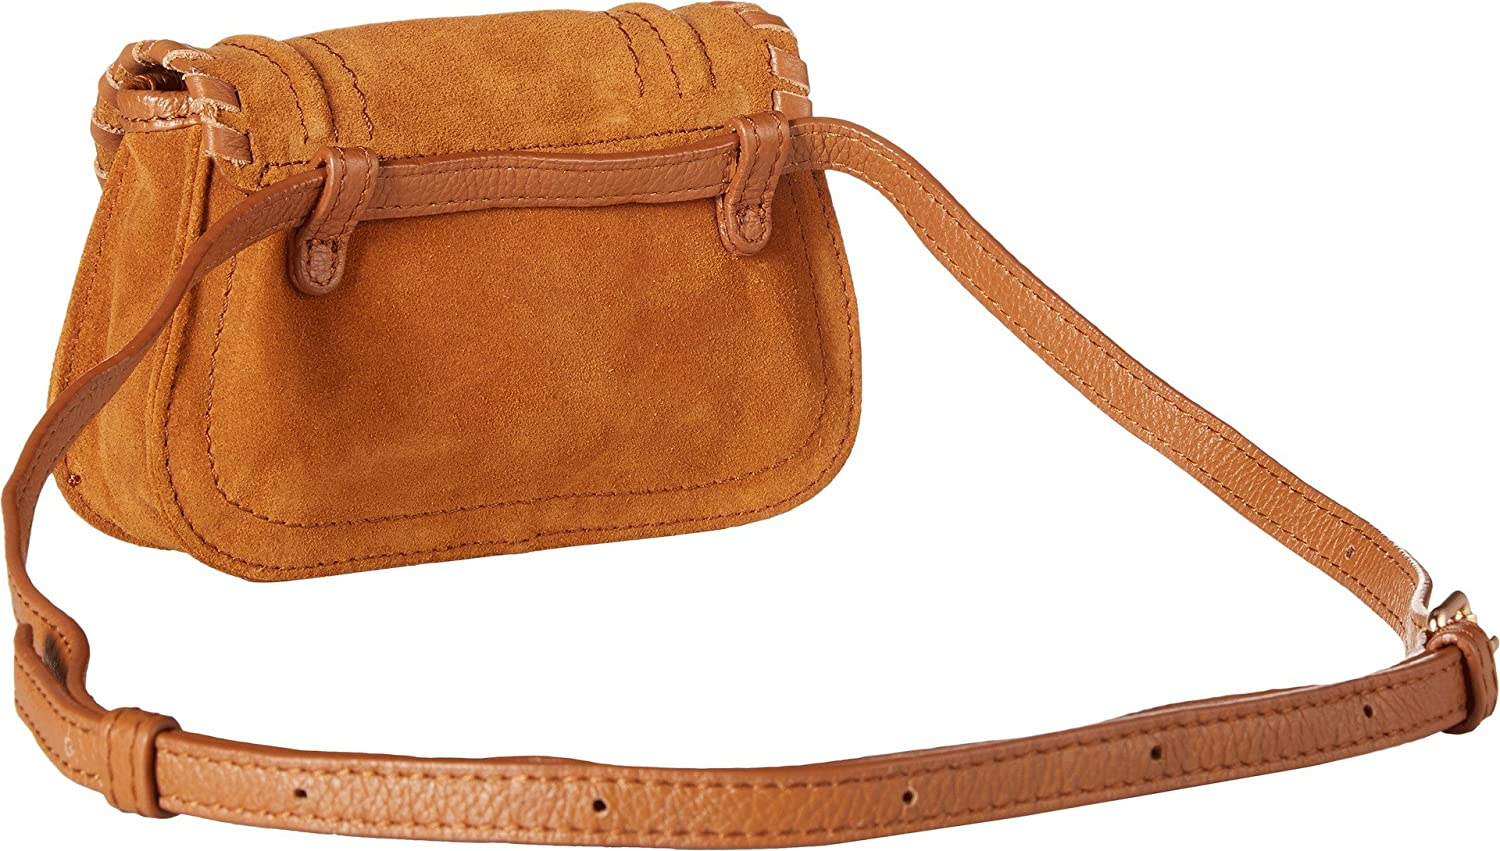 Polly Messenger Bag in Caramelo Leather and Suede See By Chlo A9Ugli